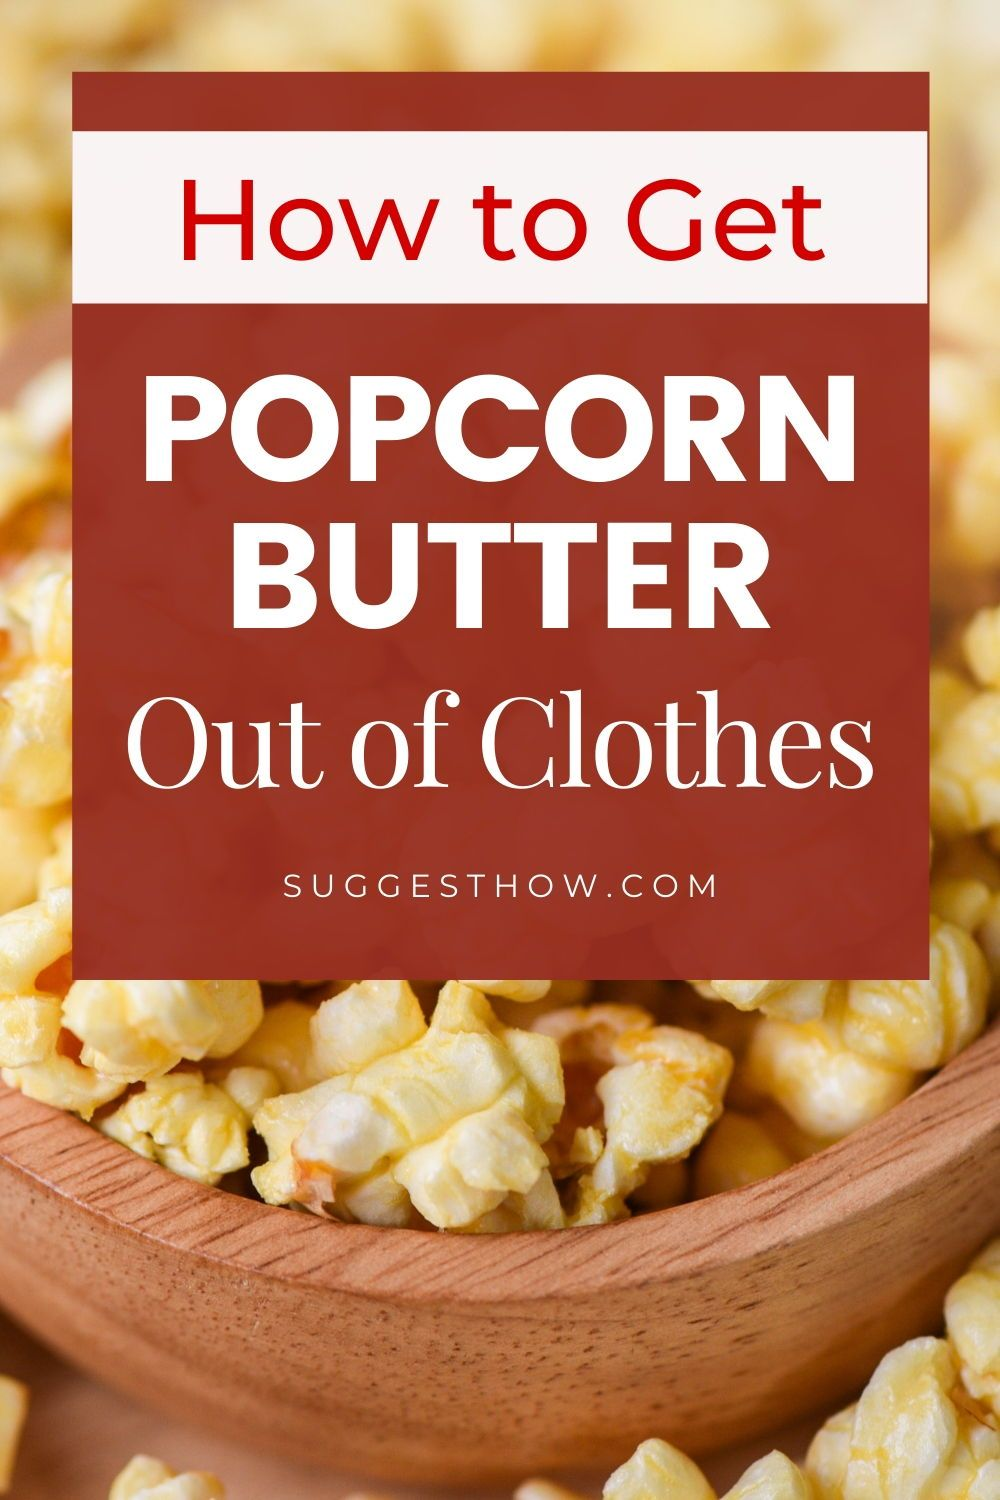 49e718a4e127ffd2737440c29ea3e743 - How To Get Popcorn Butter Stains Out Of Clothes